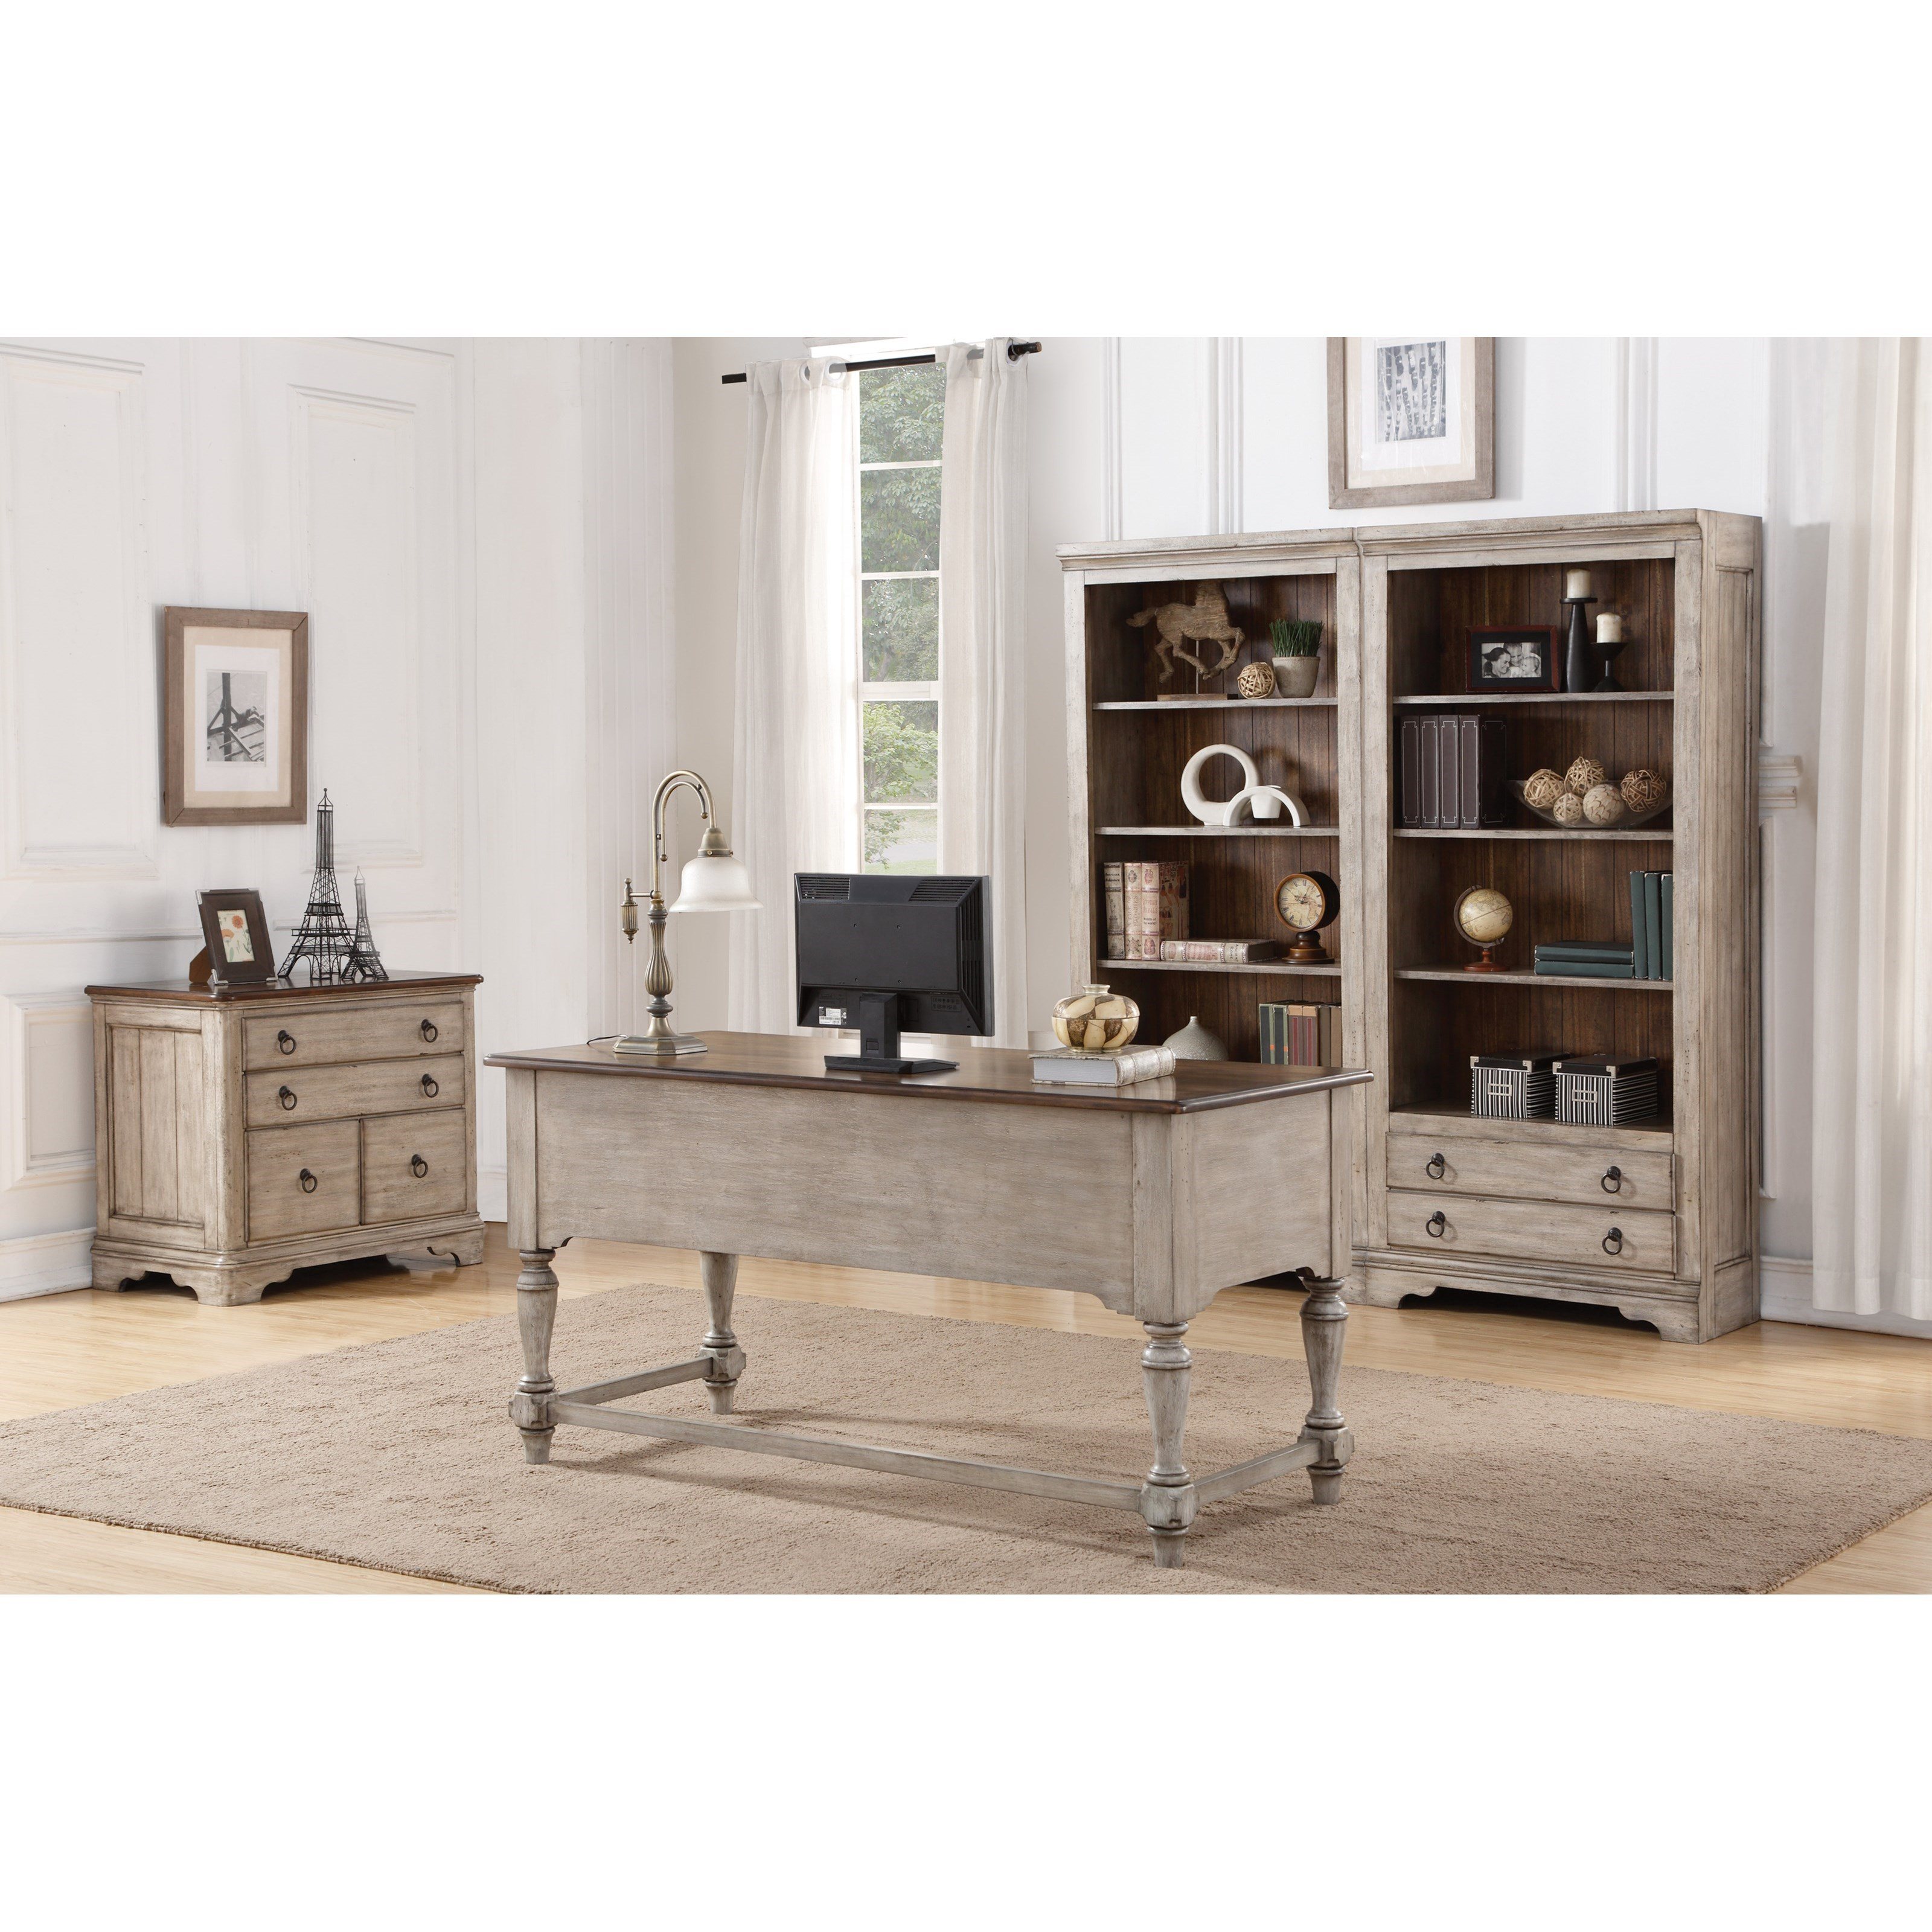 Plymouth Home Office Group by Flexsteel Wynwood Collection at Steger's Furniture